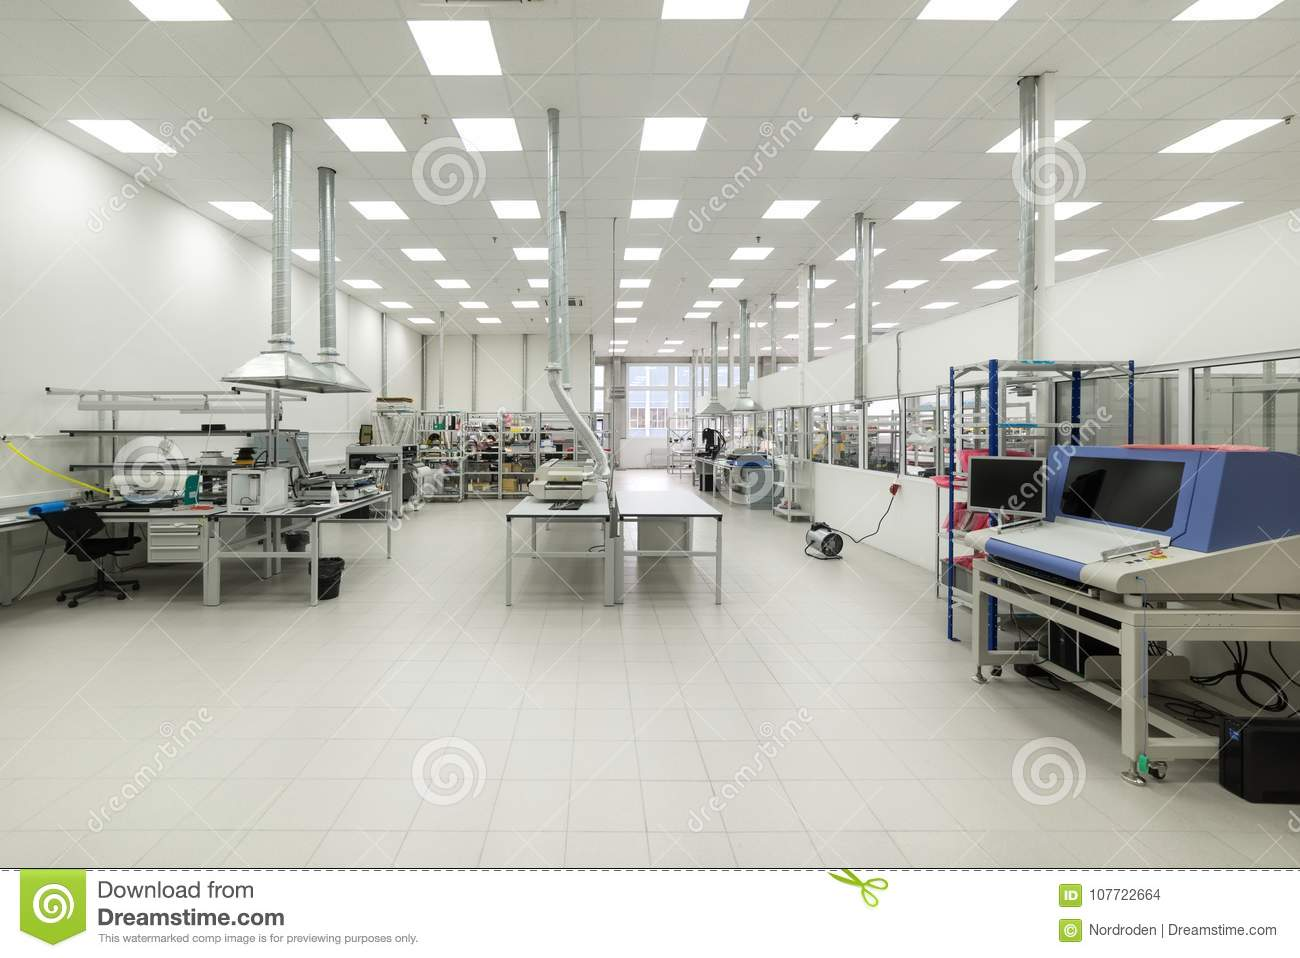 Shop Assembly And Manufacturing Of Printed Circuit Boards Stock Stockfoto Board Pcb Used In Industrial Electronic Industry